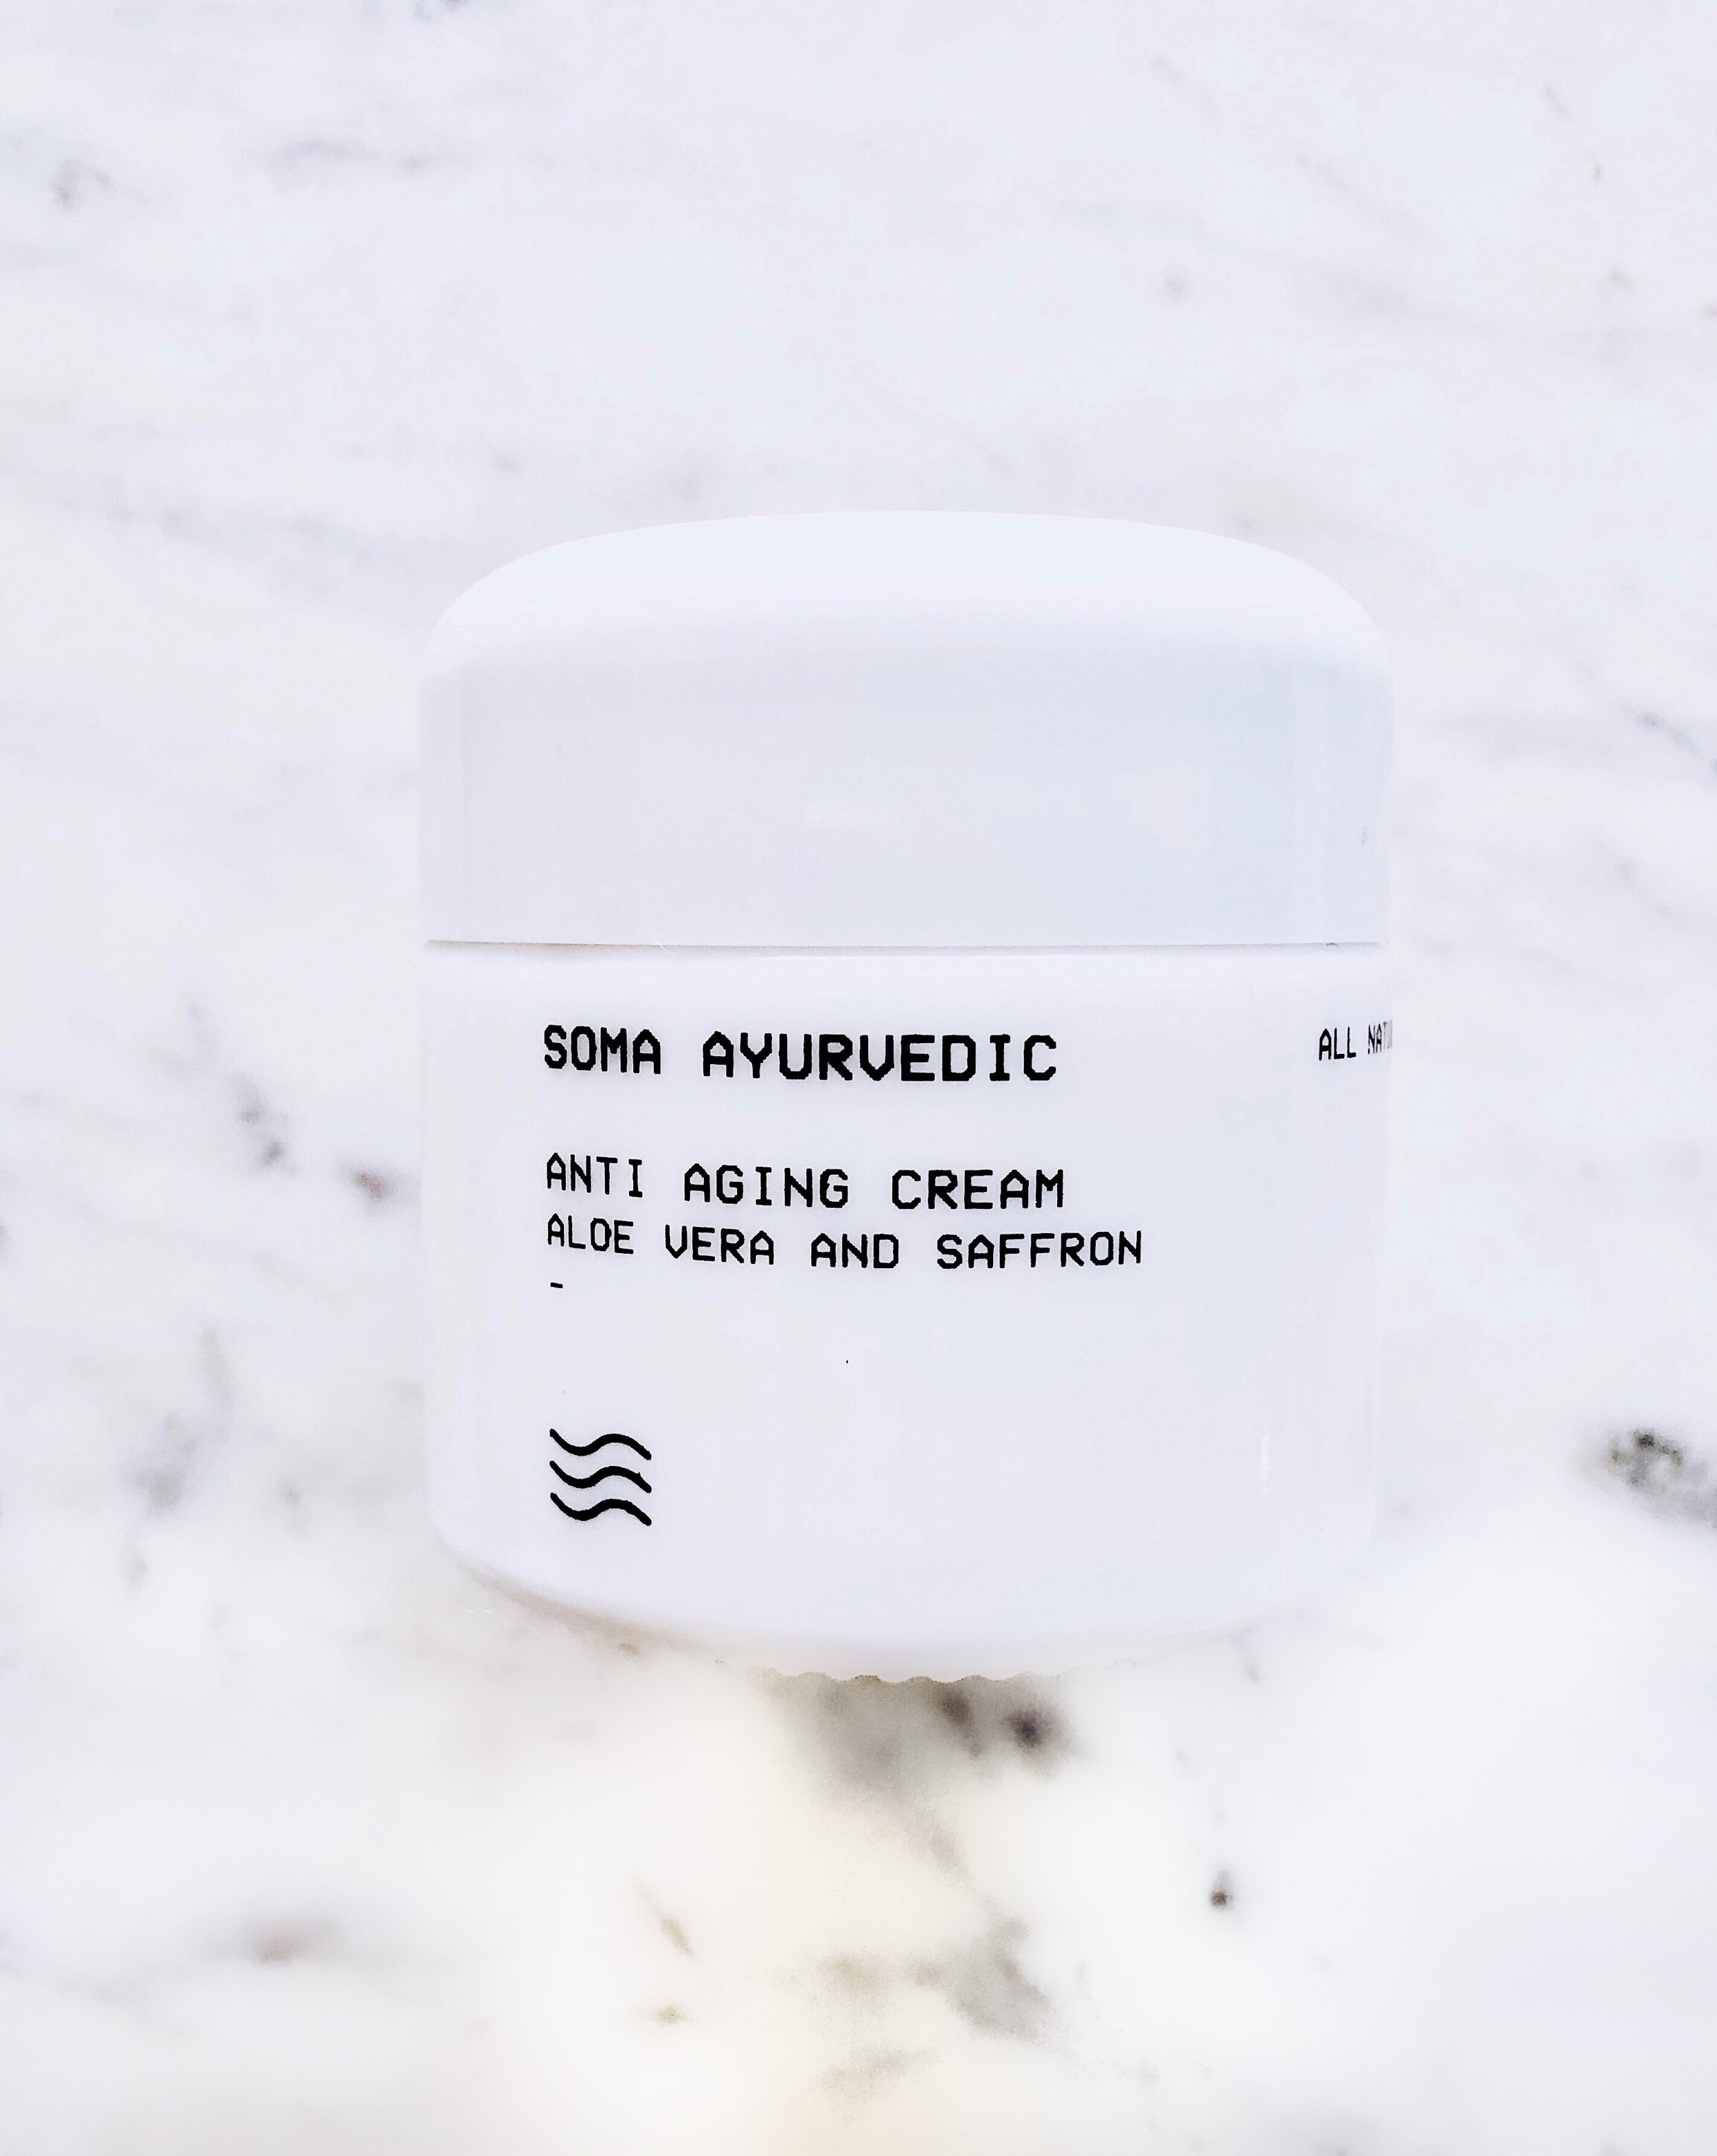 Soma Ayurvedic Anti Aging Cream- $68.00: - Here's the quick SCORECARD breakdown. Each question is rated on a scale of 1 to 5, 5being the best:1. How do the ingredients look? What's inside?- Really fantastic, squeaky 'clean' based on the research I've done. Takes a 'less is more' approach for sure!2. How's the application? Let's talk texture.- 5: This is a very thick, rich cream that soaks in and surprisingly, did not impart any oiliness. I loved how deeply moisturizing this felt!3. How is the scent?- 3: It's not subtle :) If you have issues with strong scents, this may not be for you. I adjusted to the strong aloe scent after a few applications.4. Is it non-irritating?- 5: My skin was not irritated by this after applying once a day for two weeks.5. Performance: does it do what it promises to do?- 3: It left my skin feeling very hydrated and silky smooth. I'm not so sure about added elasticity and didn't see a big impact on signs of aging like wrinkles.6. Is this a consciously-created product? 5- 100% yes! Vegan, cruelty-free, and so much more. The mission behind the brand is commendable and the packaging is both thoughtful and sustainable.7. Would I buy it again? 4- This is a dense and rich cream that I'd consider purchasing (this was a gift, but my review is honest) this cream during harsher, winter months!FINAL SCORE:25/30